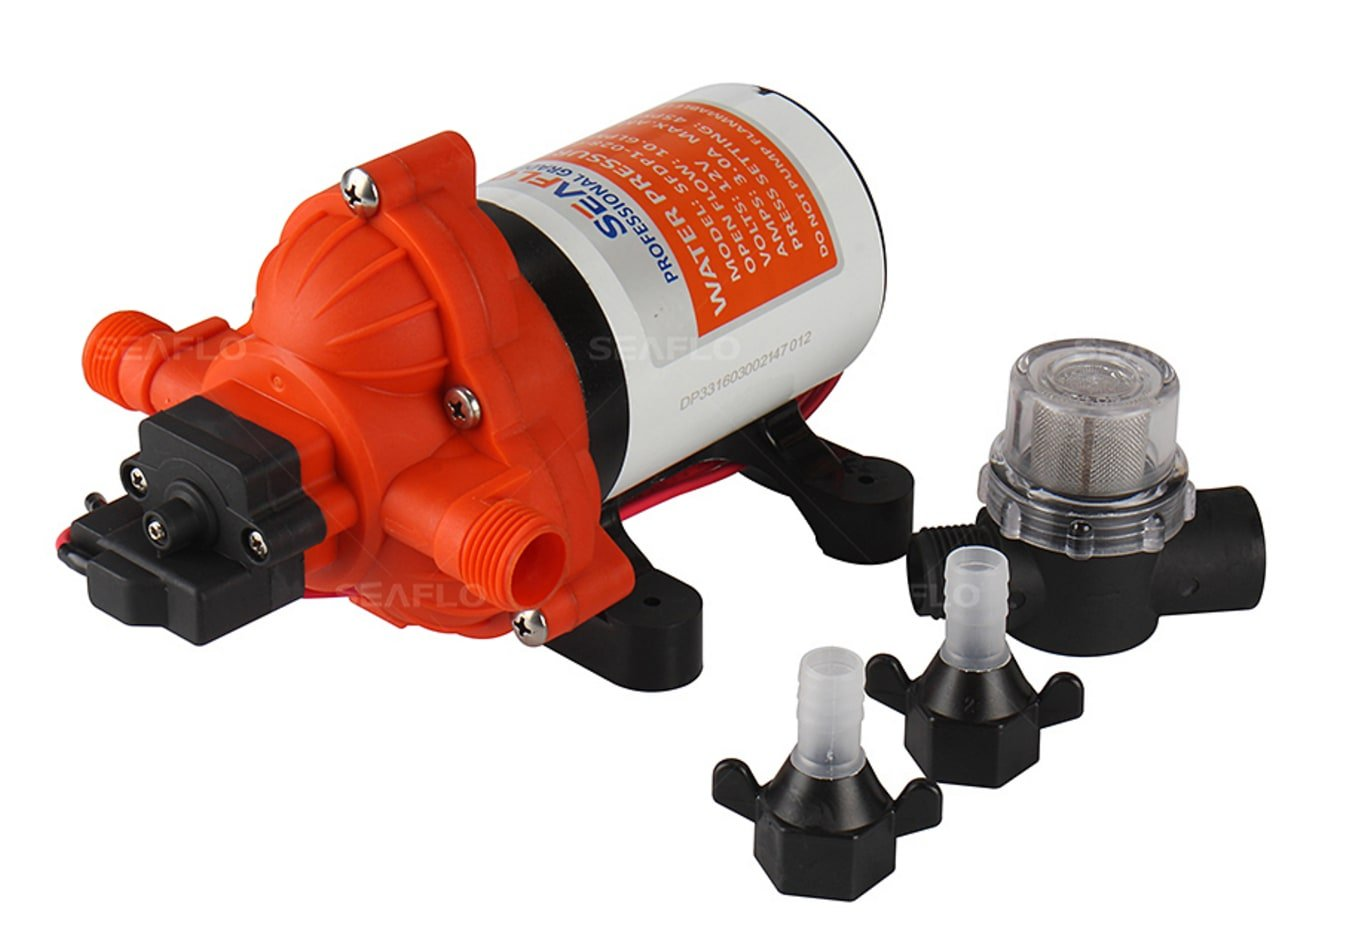 SEAFLO 33-Series Industrial Water Pressure Pump w/Power Plug for Wall Outlet - 115VAC, 3.3 GPM, 45 PSI by Seaflo (Image #2)